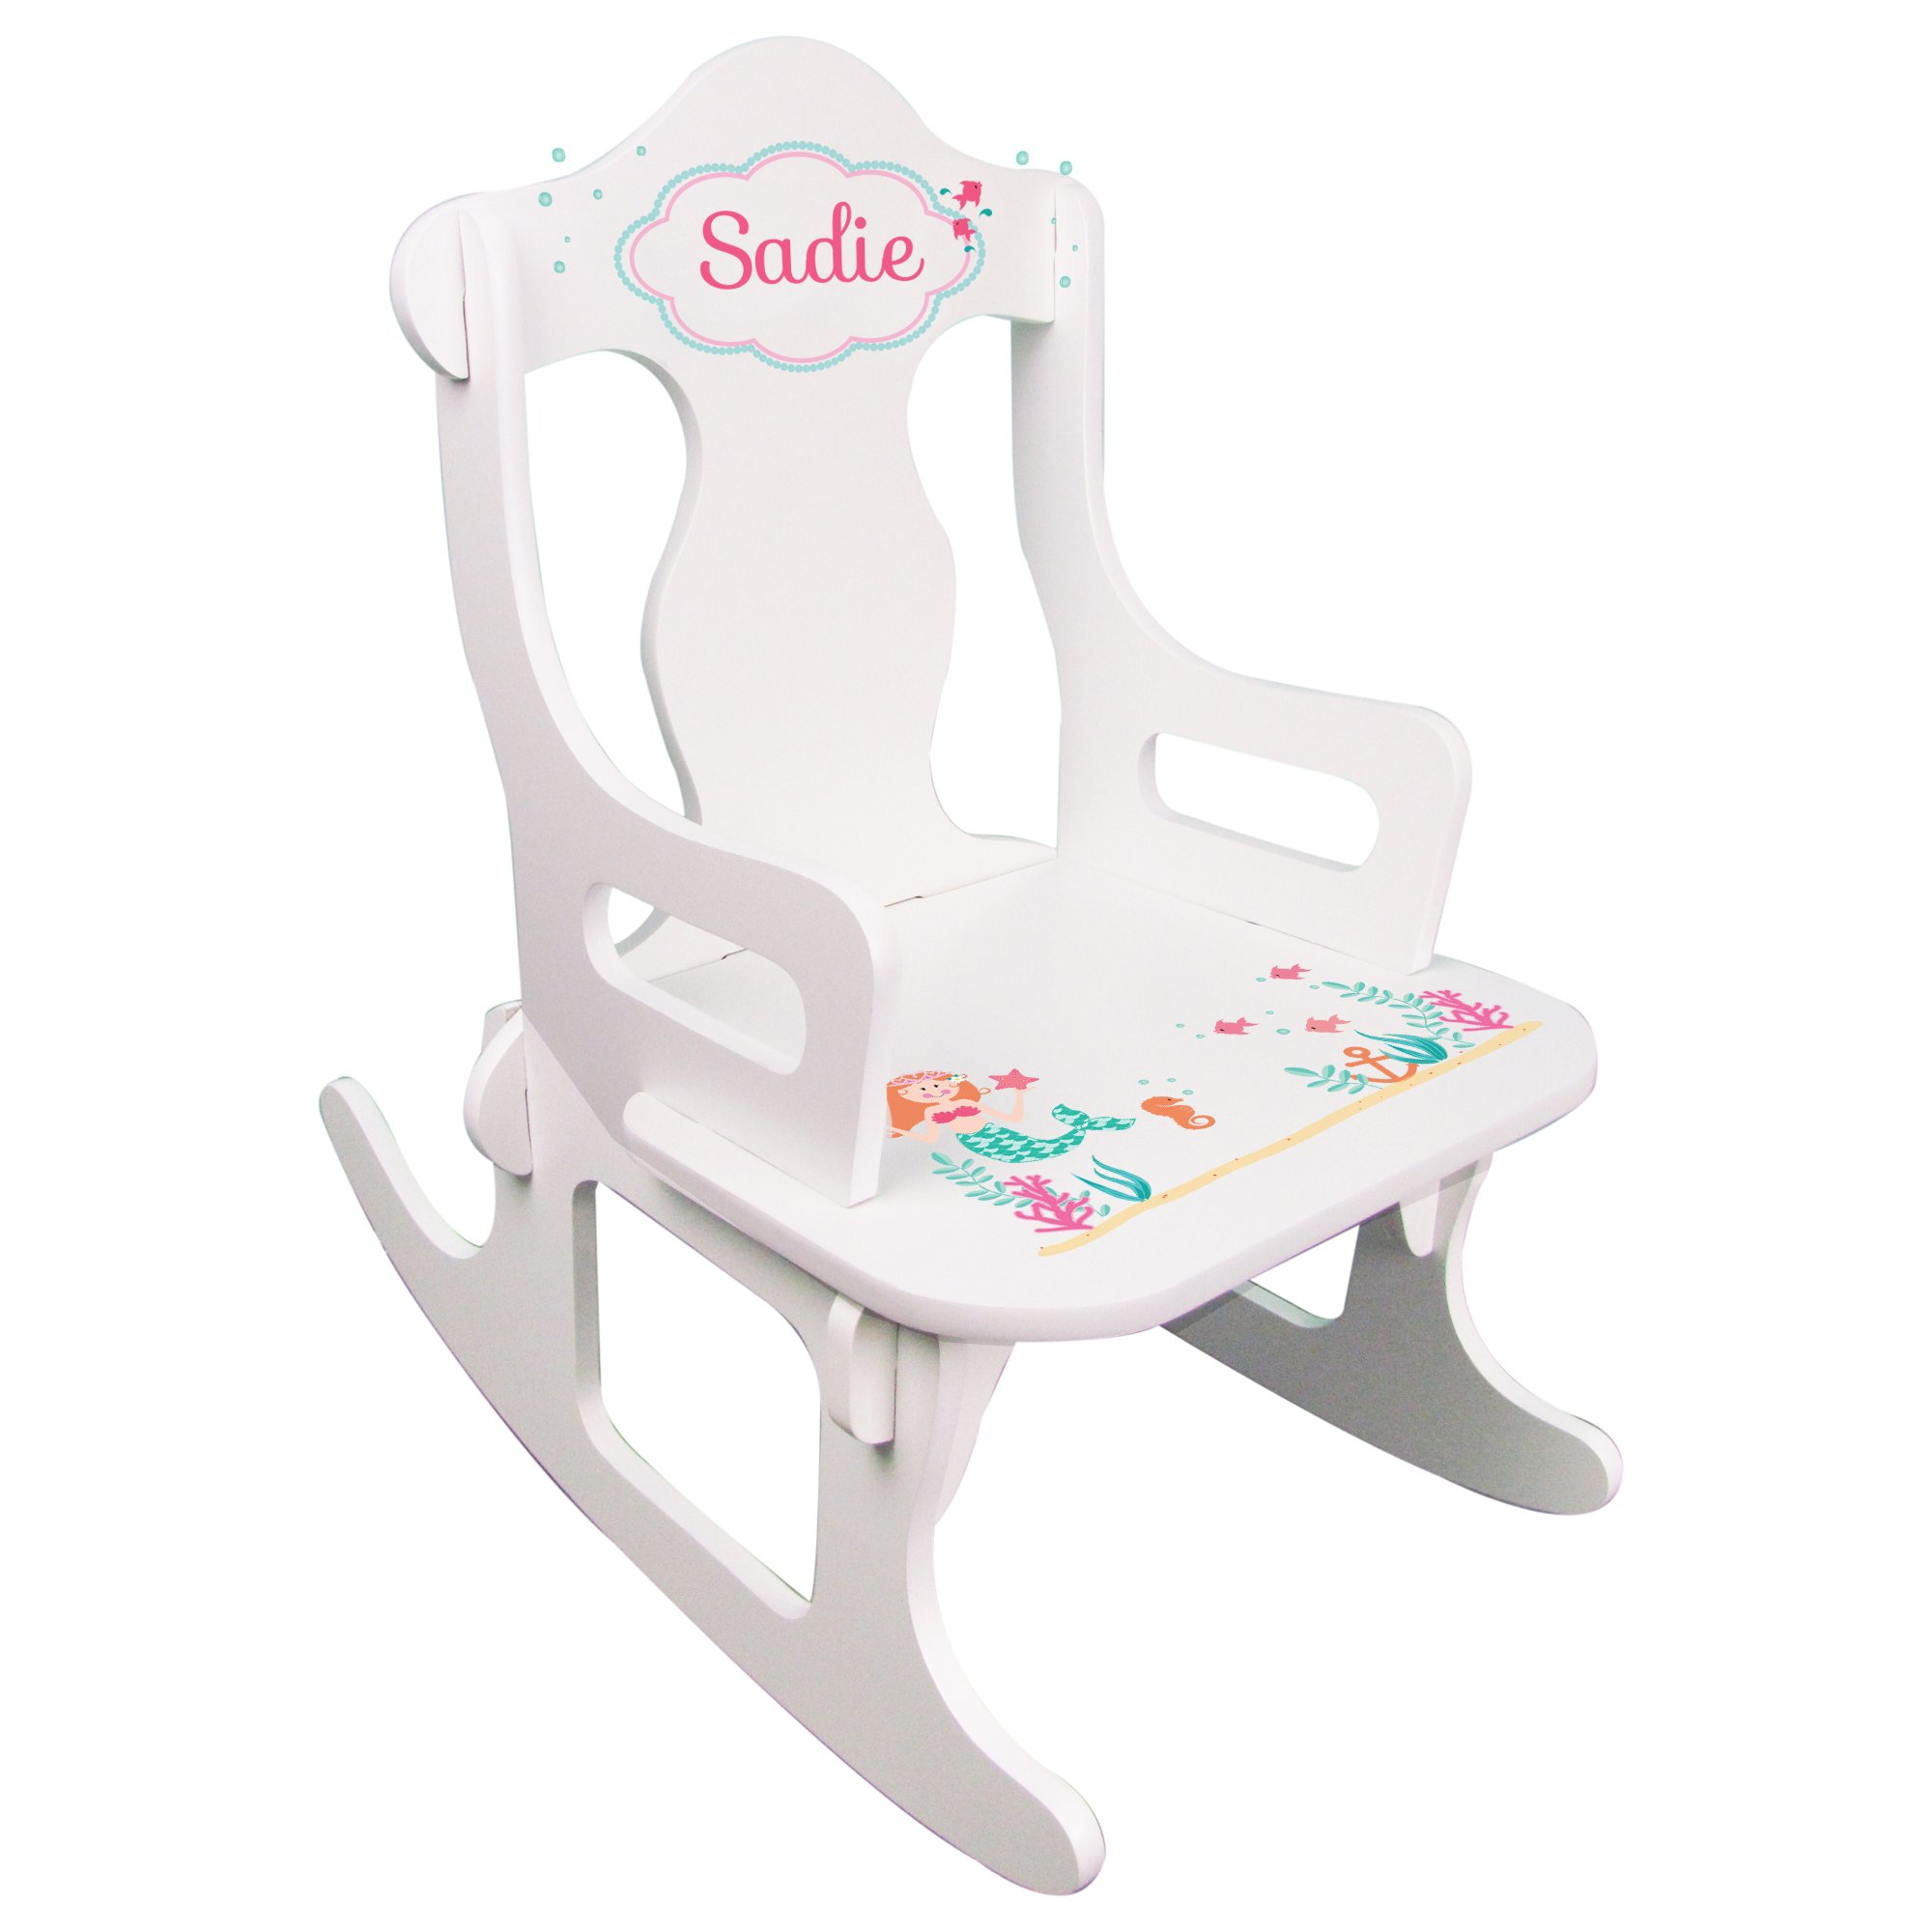 Personalized Child's Mermaid Puzzle Rocking Chair